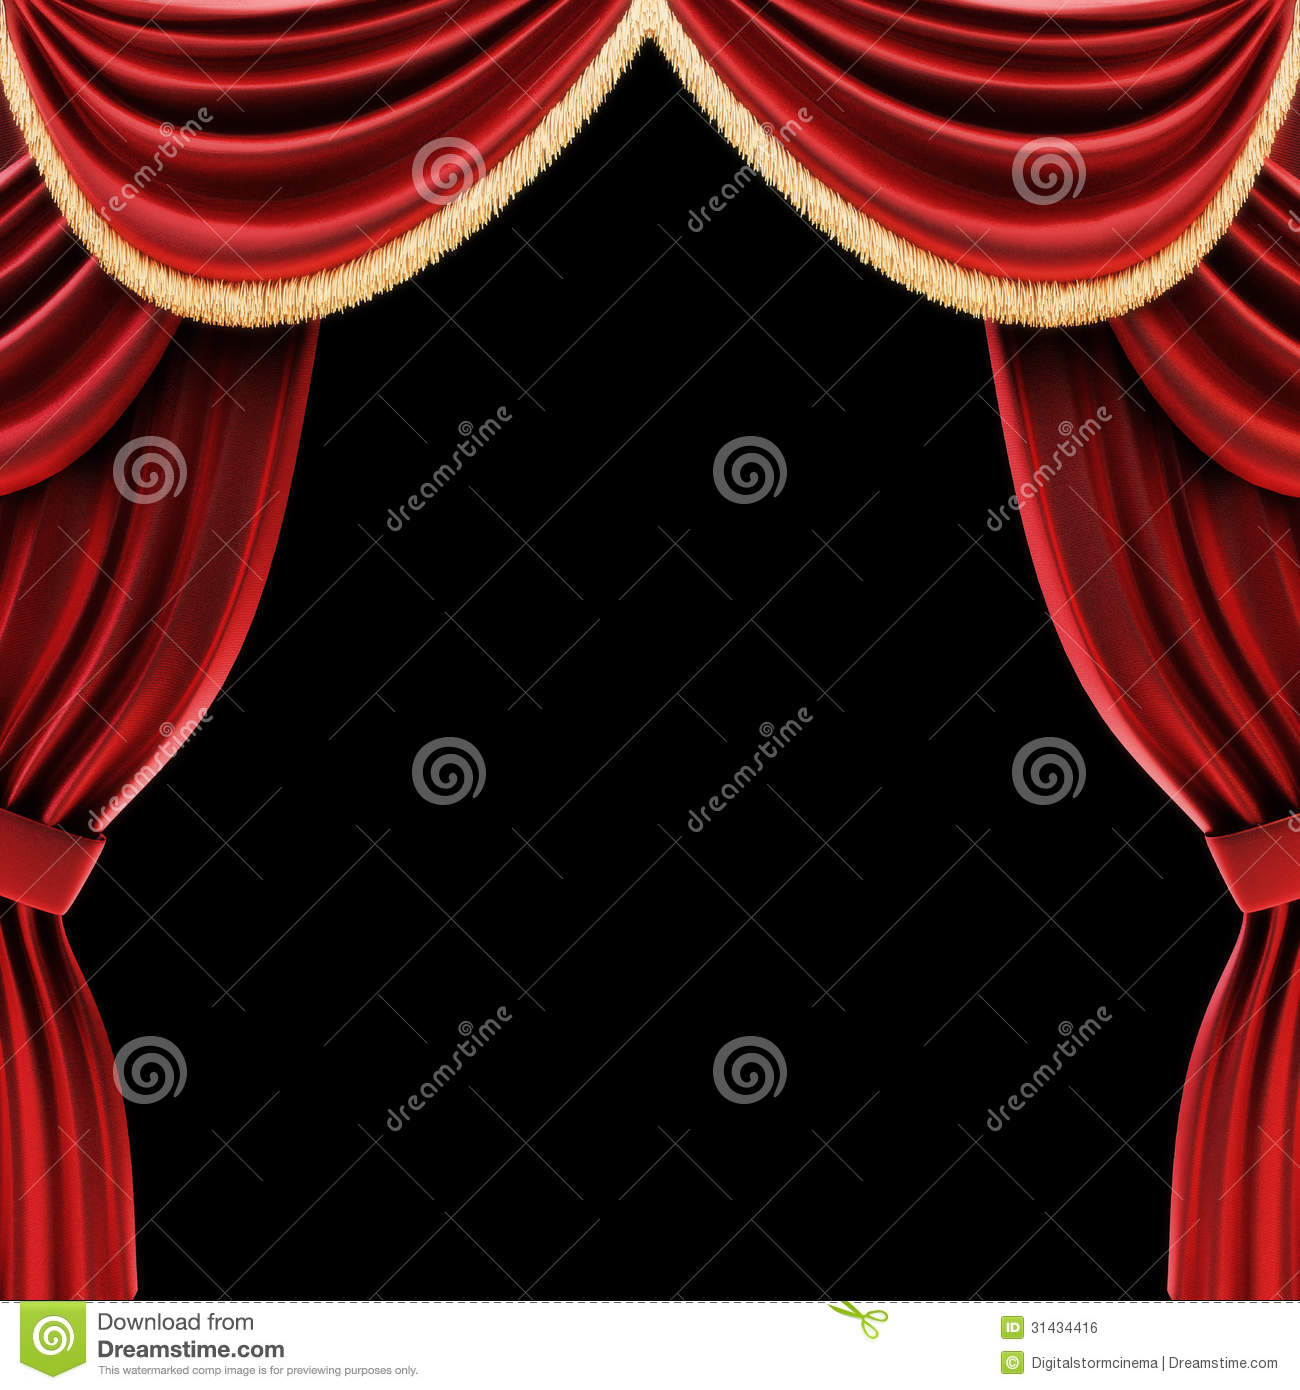 Royalty free stock photo black curtains drapes open stage theater